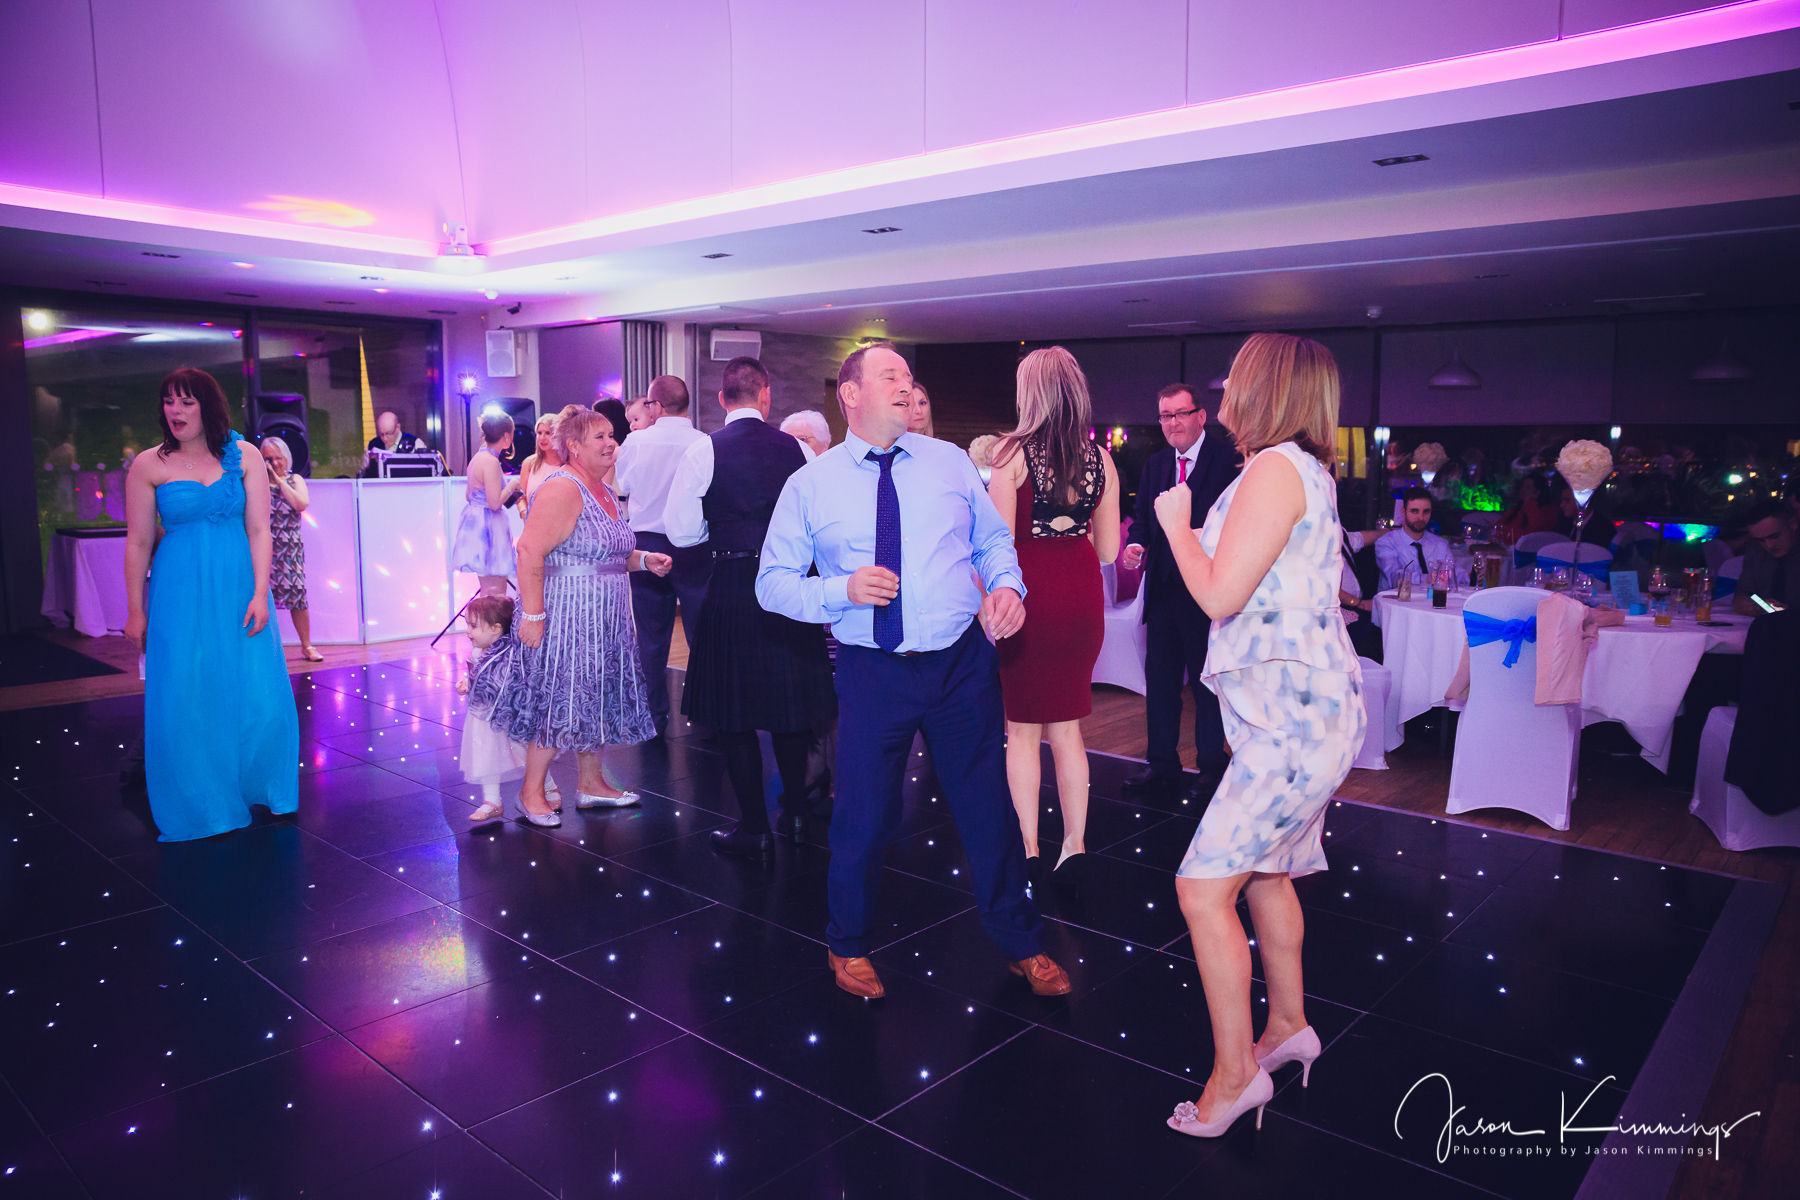 vu-wedding-photography-bathgate-31.jpg